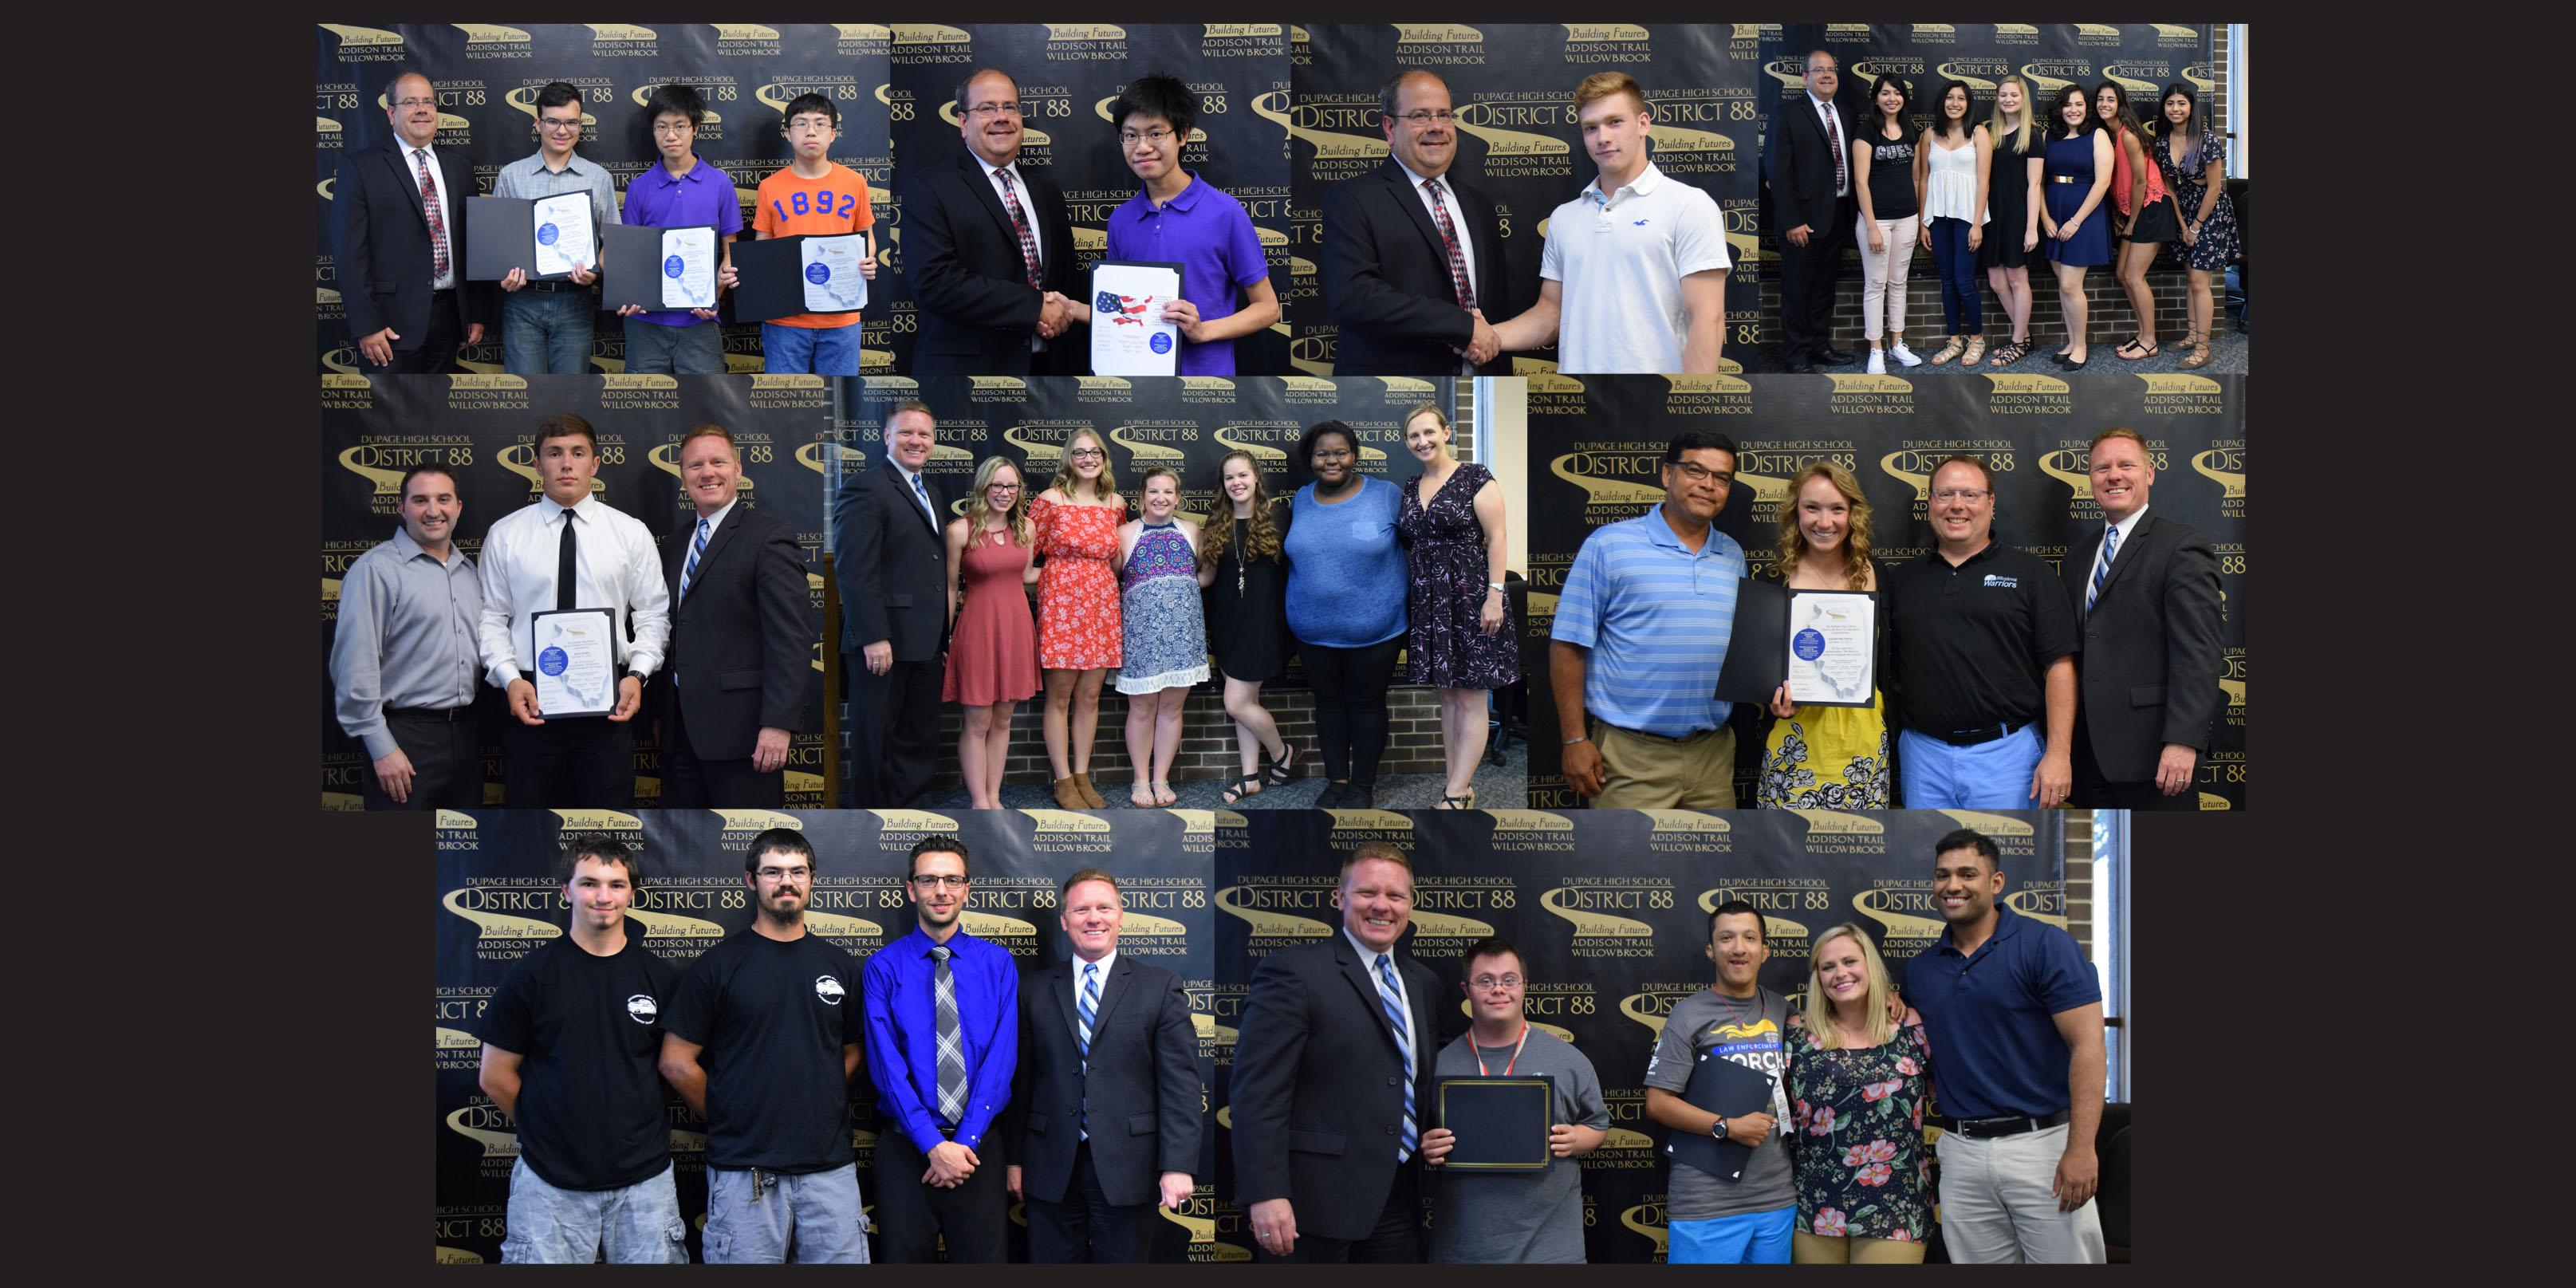 District 88 Board of Education recognizes students for spring State-level and National-level accomplishments